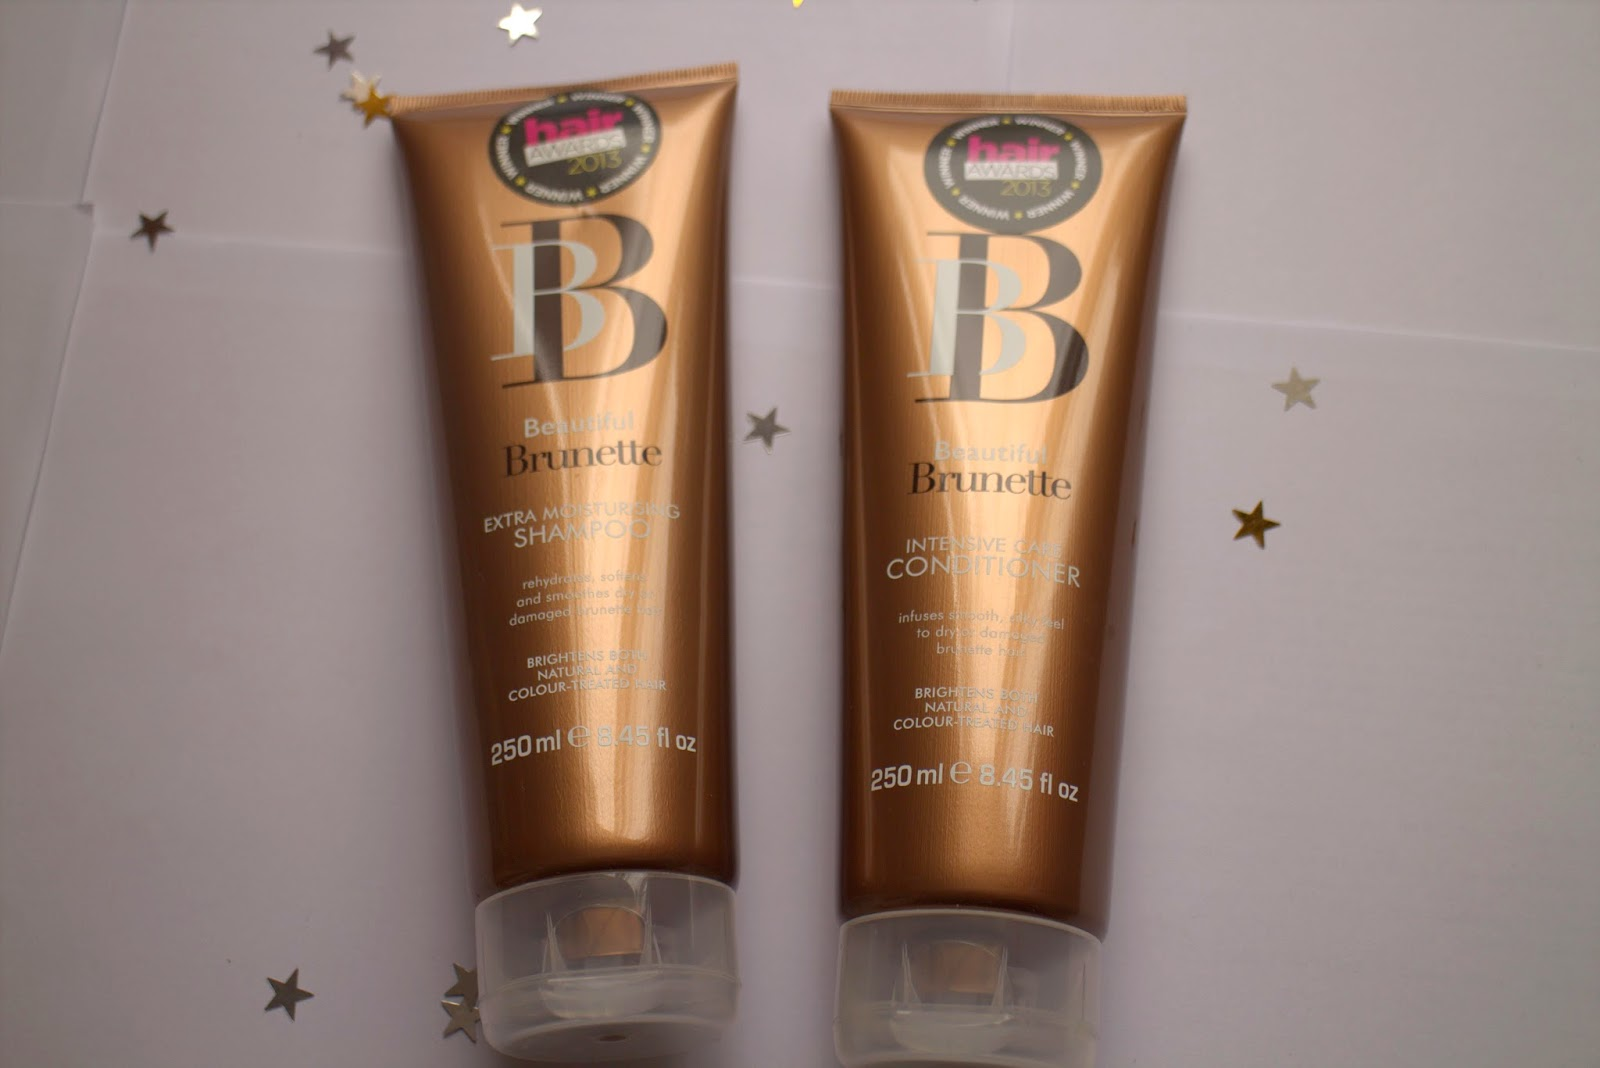 BB shampoo, Best shampoo for dry hair, Best shampoo for damaged hair, Best hair products, Beauty review, Hair awards,